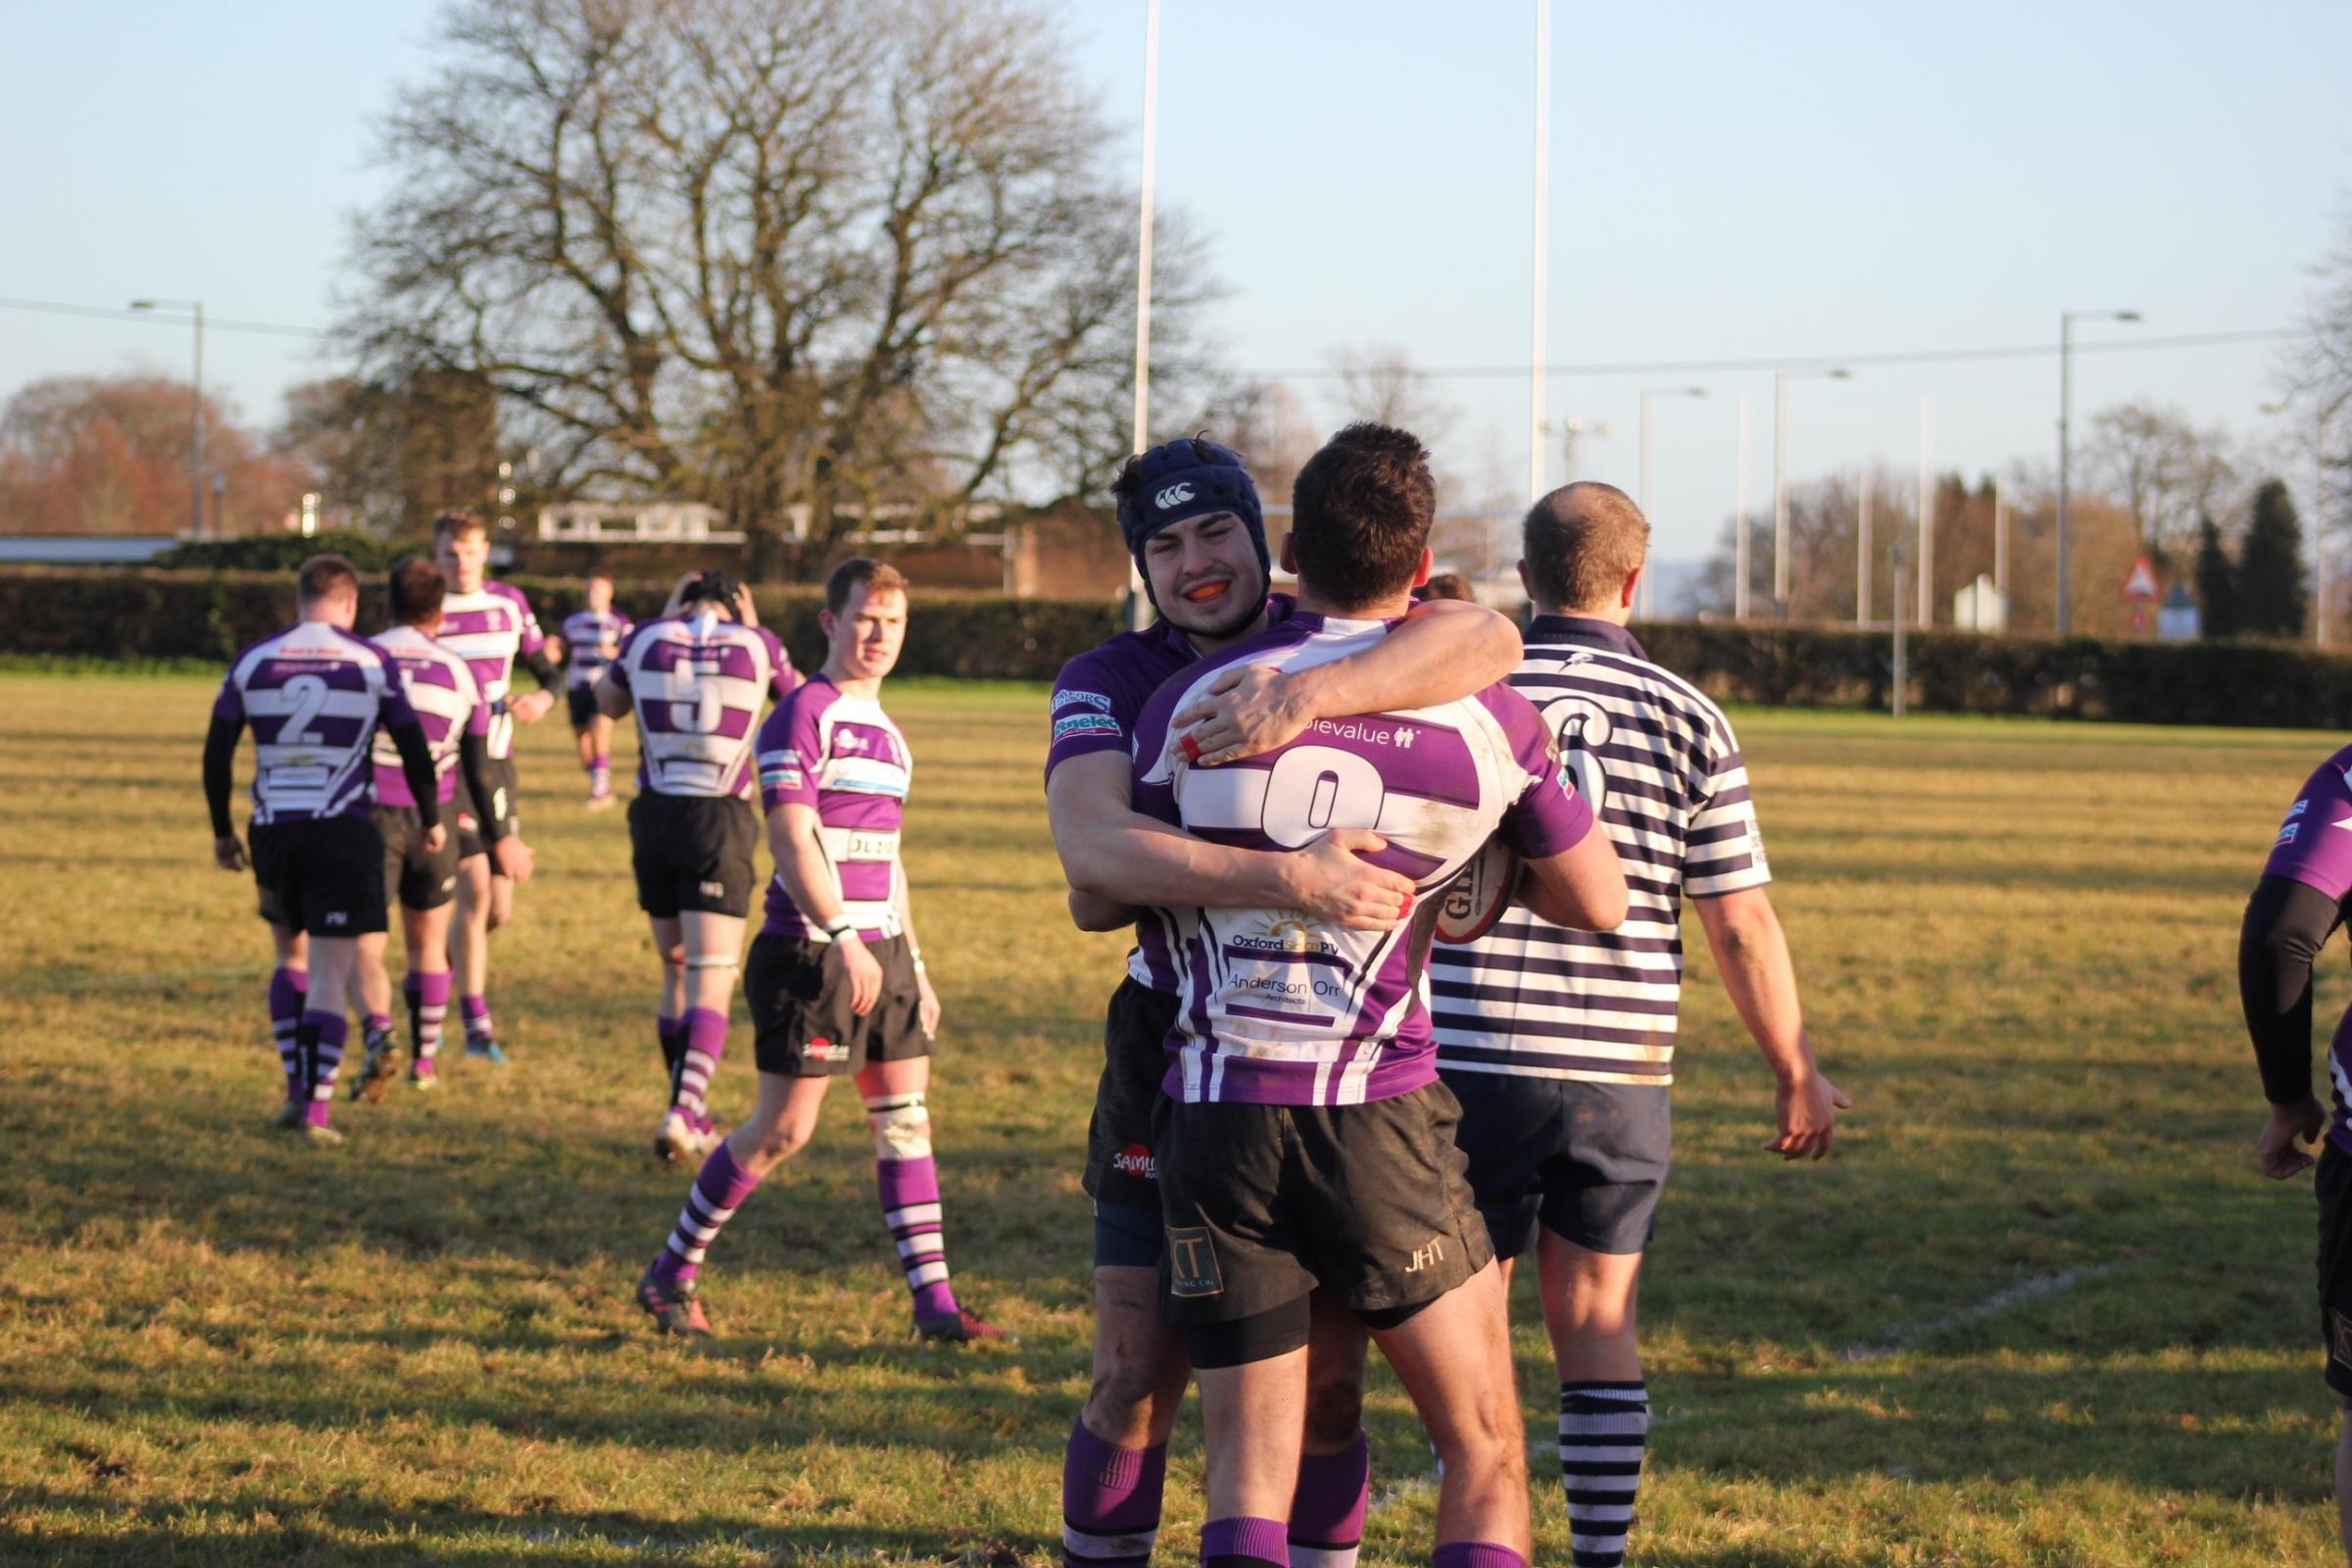 Caillin Taylor congratulates Jack Taylor on his try during Wheatley's victory over the Blue Boar in the Oxfordshire Shield Picture: Simon Chadbone